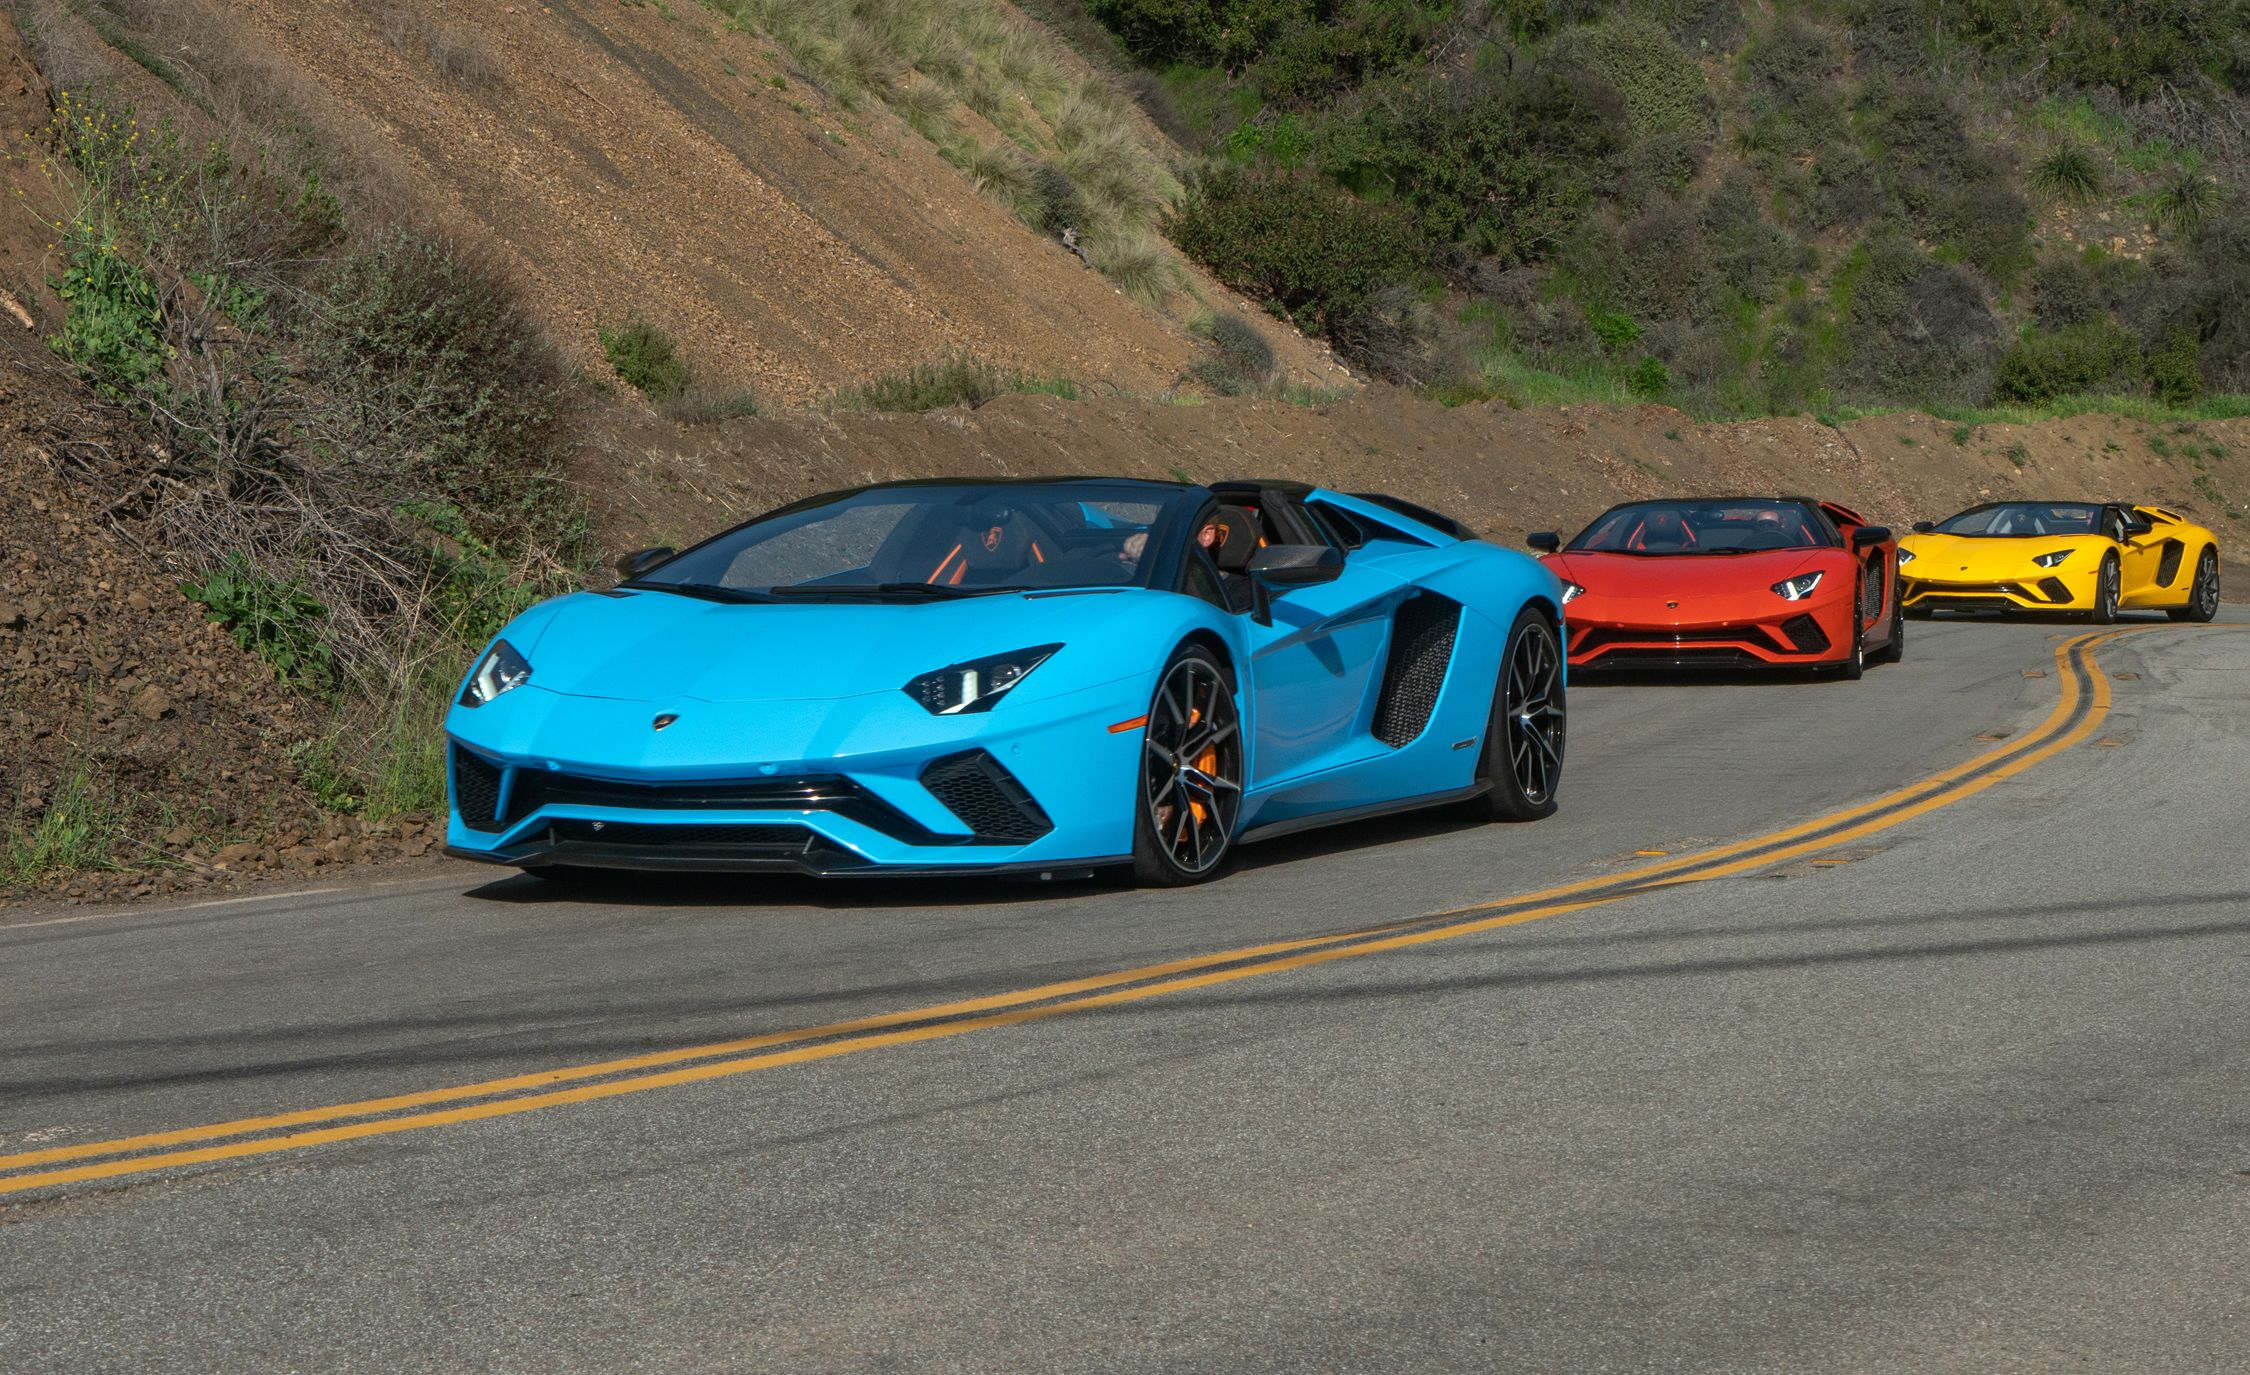 2018 Lamborghini Aventador S Roadster Driven You Can Run